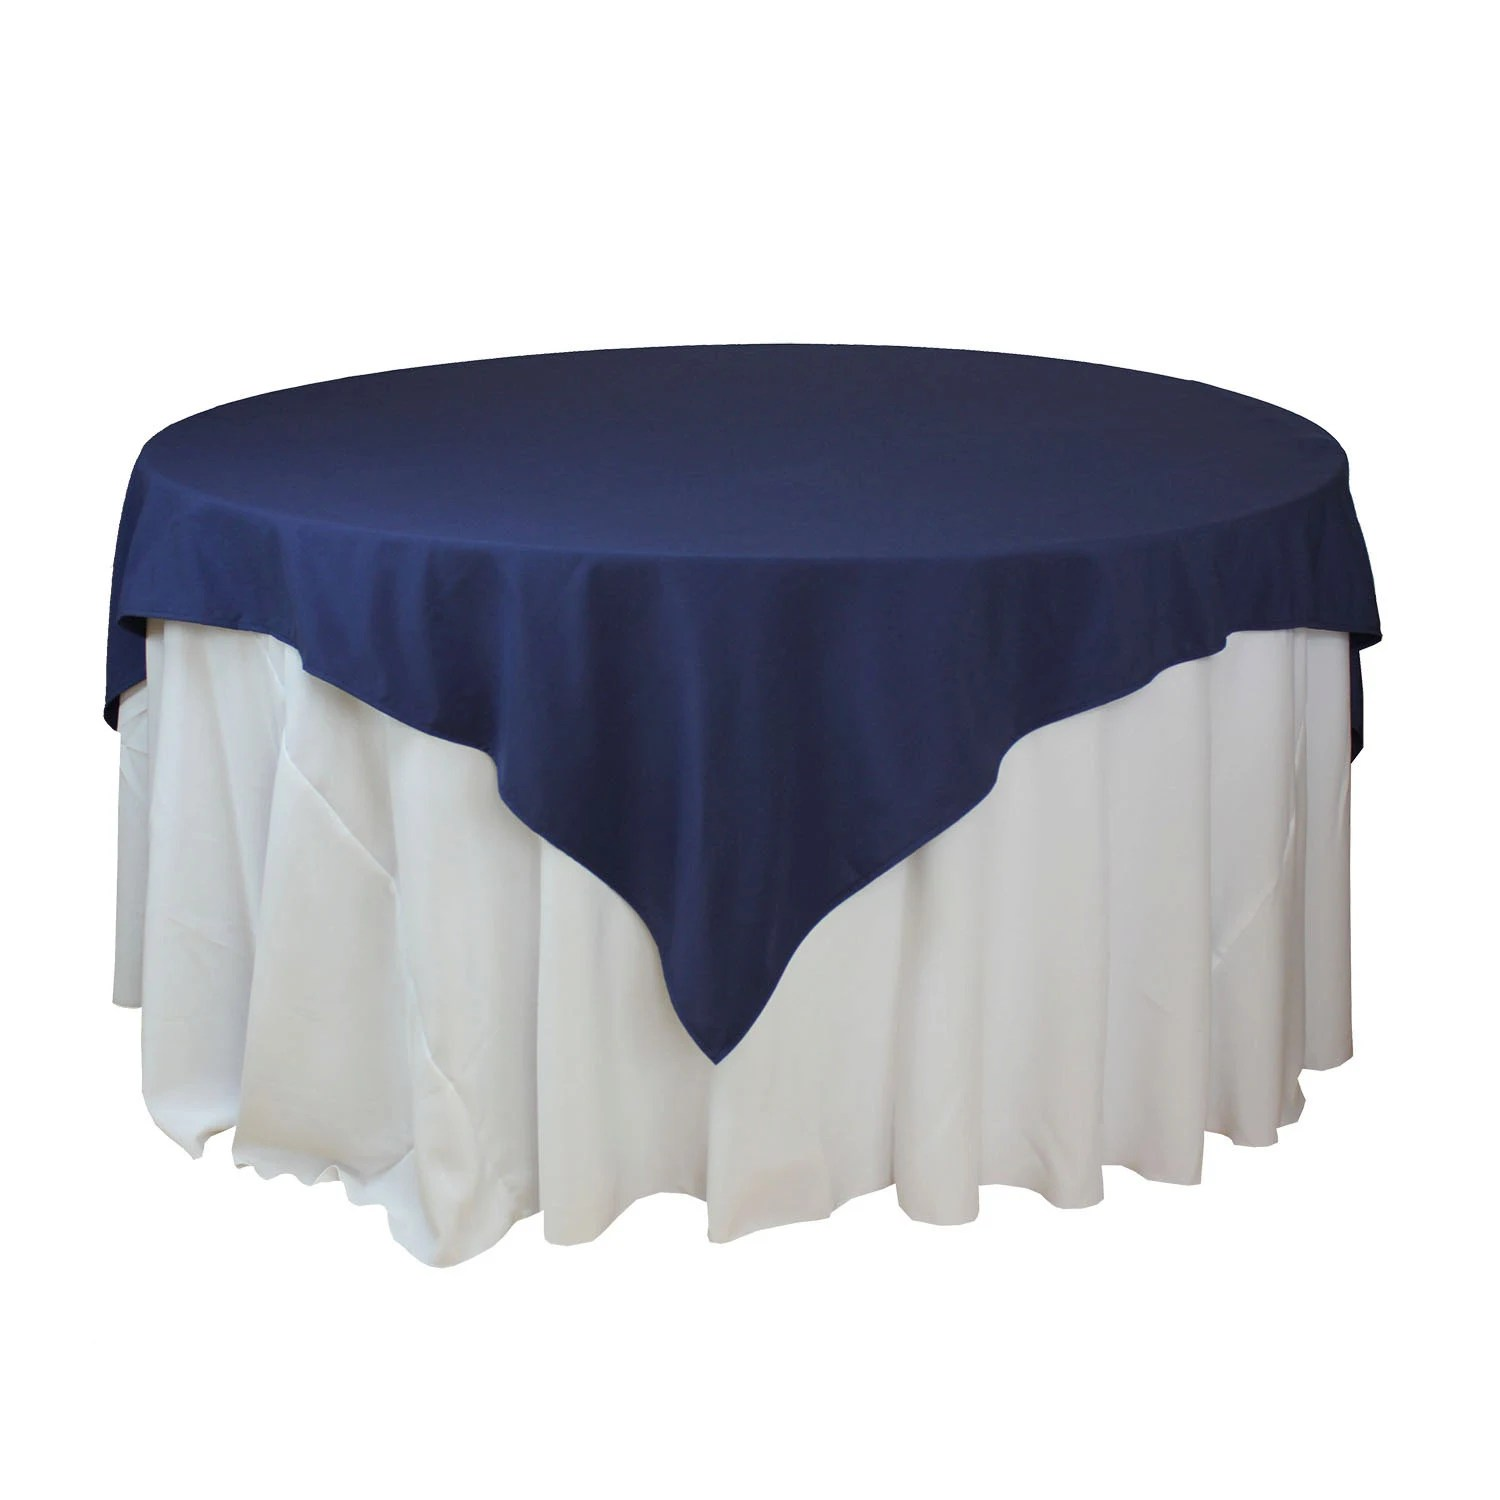 navy blue tablecloth tablecloths for wedding 72 72 inches Navy Blue Table Overlays Square Navy Blue Tablecloths Matte Table Overlays for 5 FT Round Tables Wholesale Table Linens